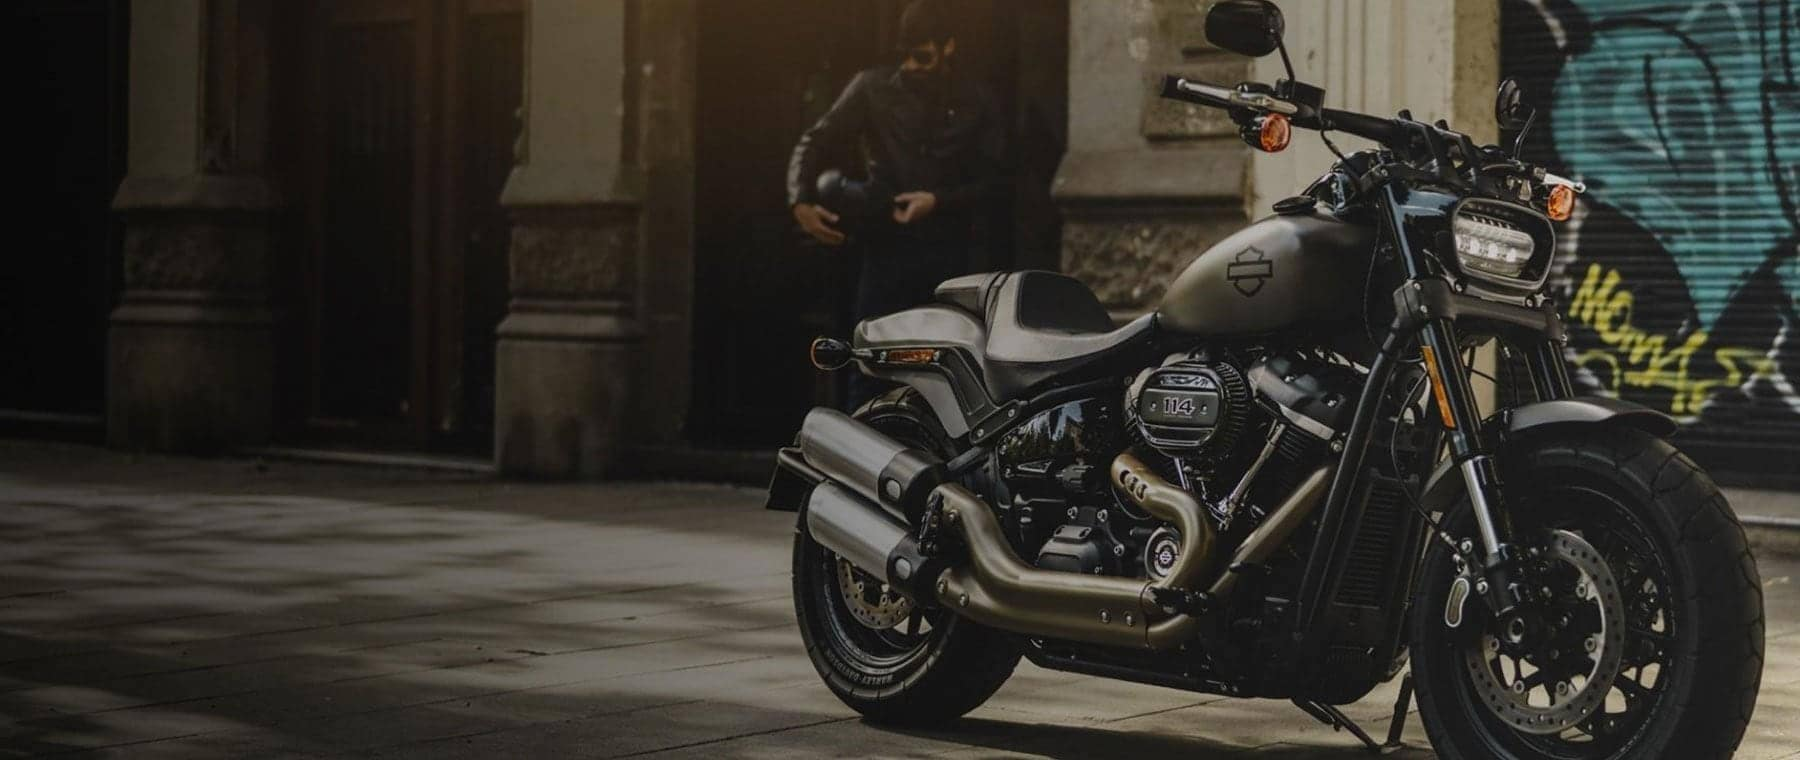 welcome to Hudson Valley Harley-Davidson